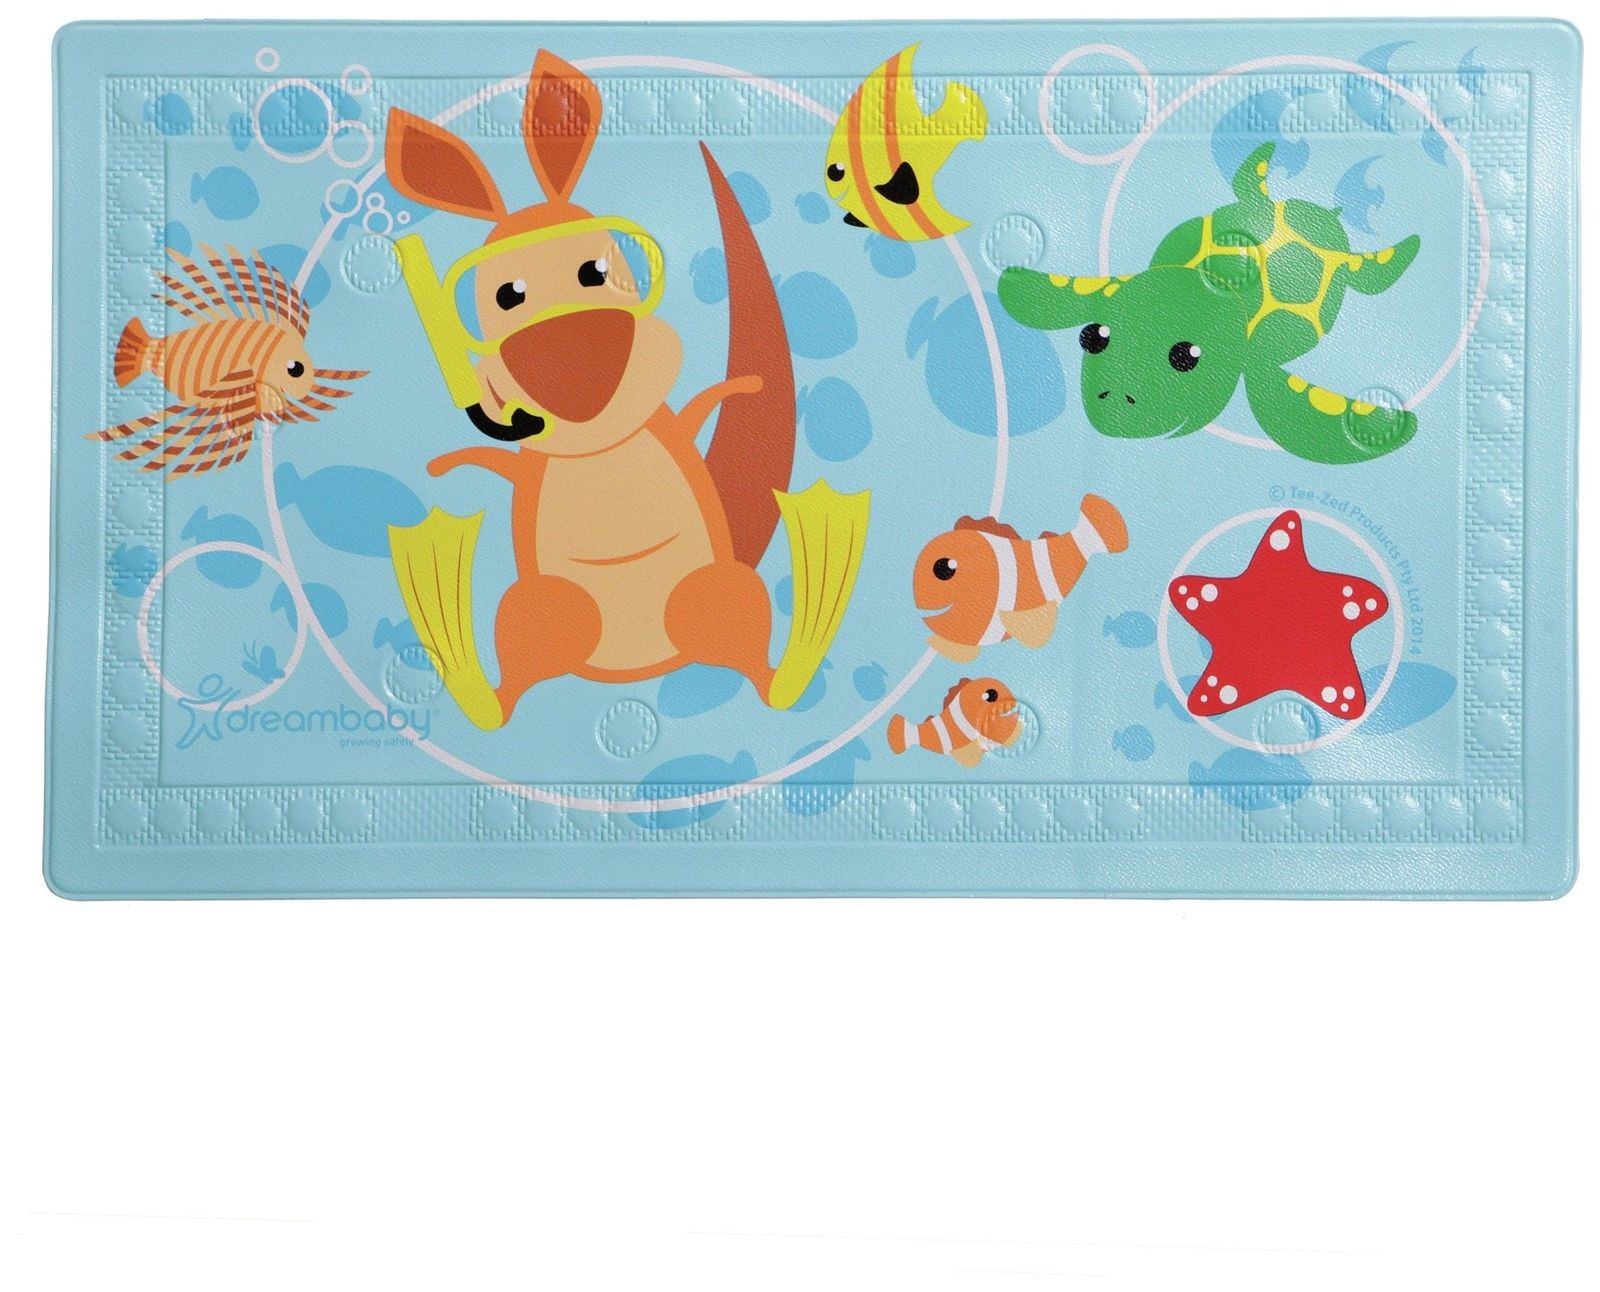 Dreambaby Anti-slip Bath Mat  with too hot water indicator